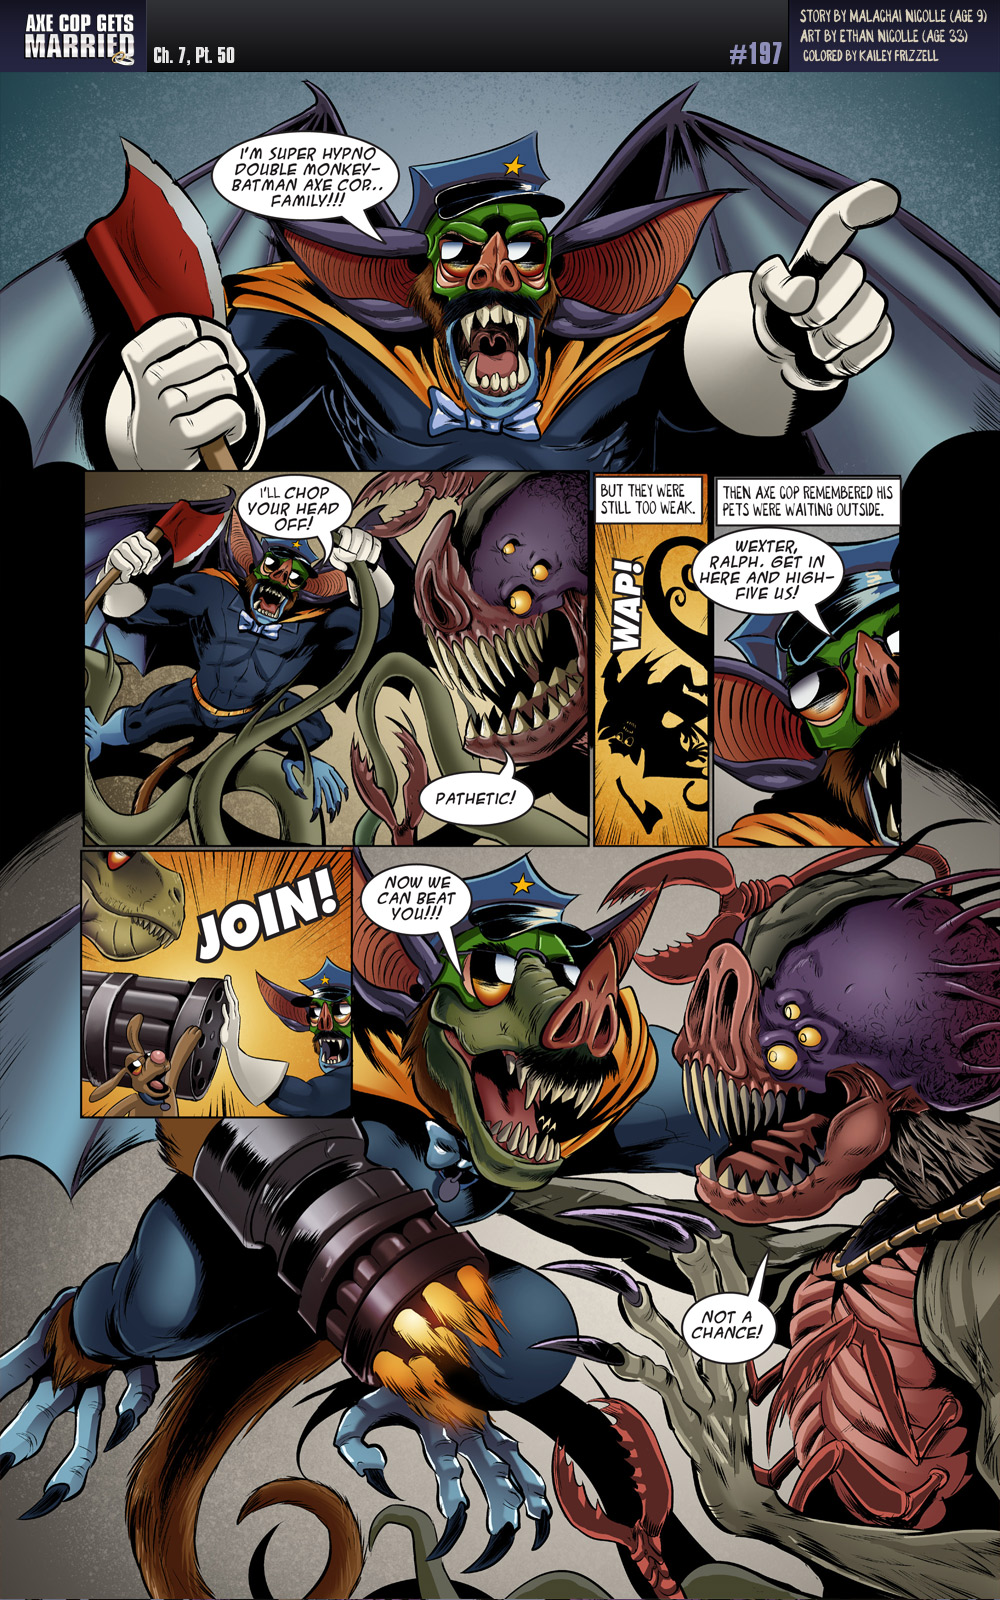 I'm glad the bow tie was not lost in any of the transformations.  Keeps him looking classy.  We can call him Super Hypno Double-Monkey Batman Axe Cop Familsauras Rex Wrinkles.